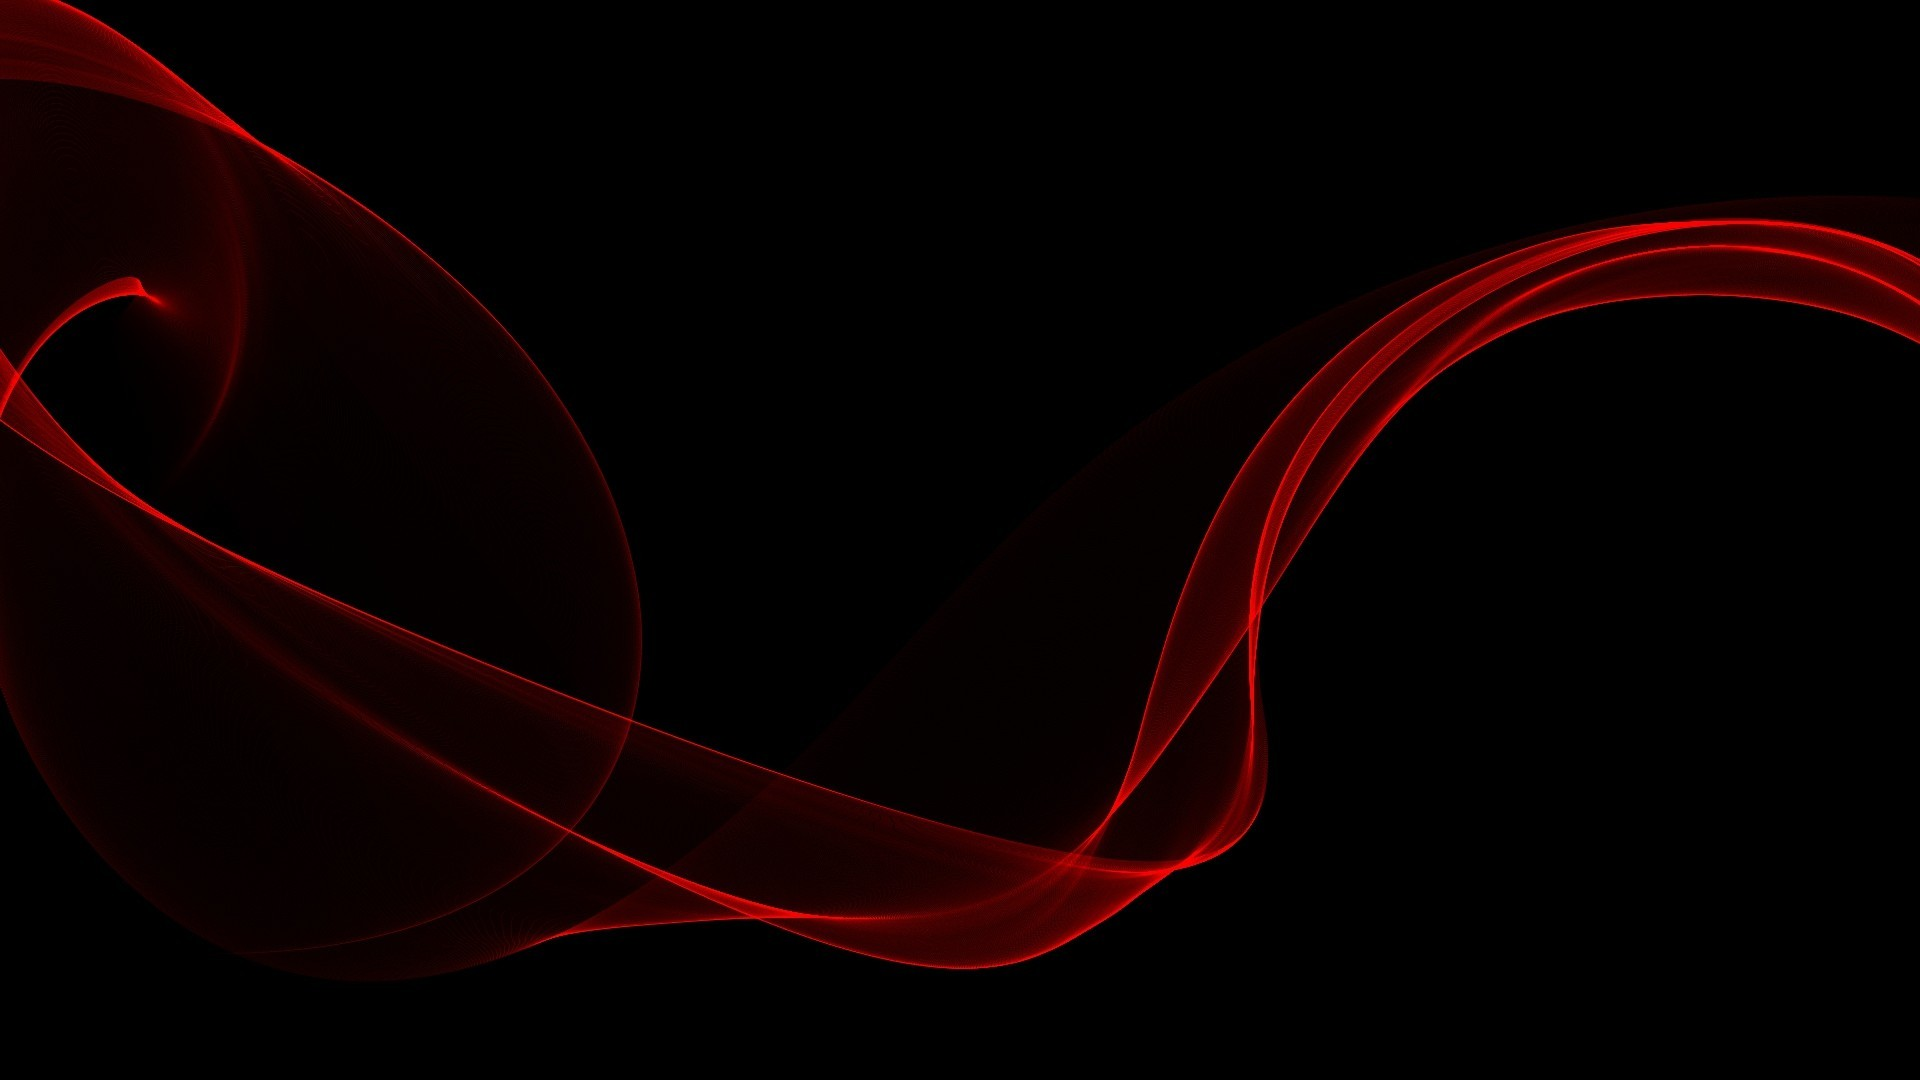 1920x1080 Abstract Black Wallpaper  Abstract, Black, Minimalistic .